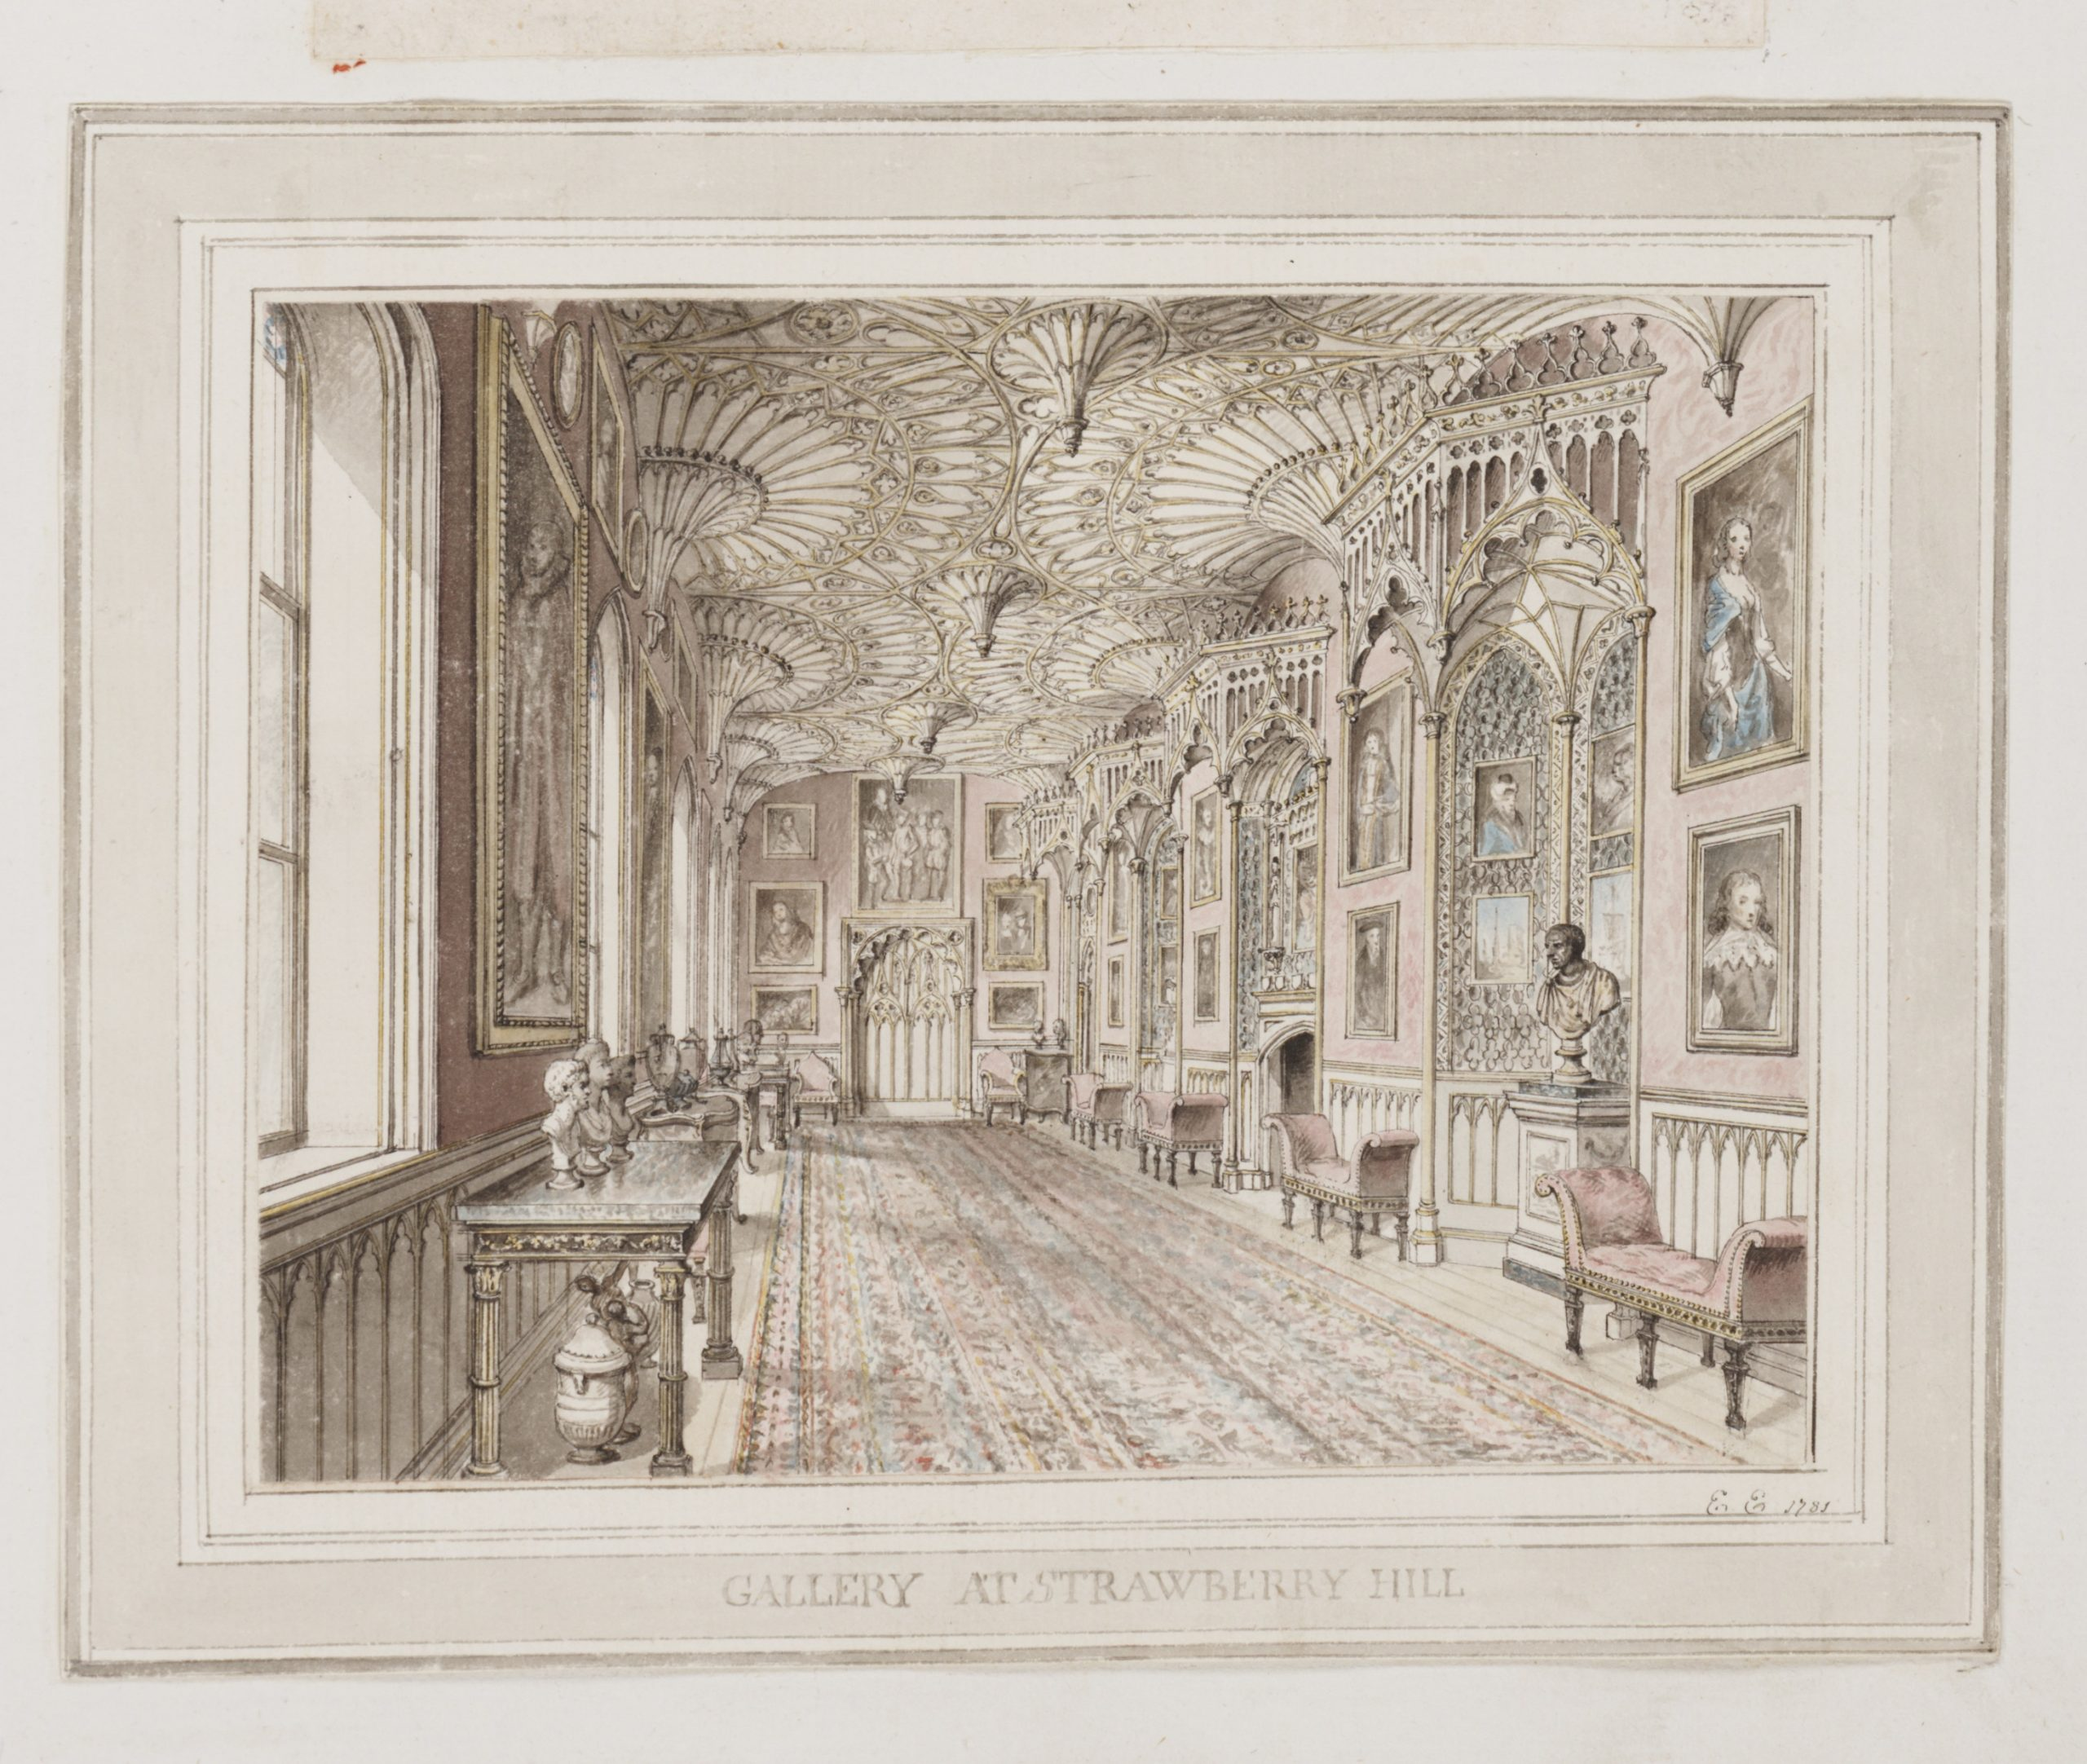 Gallery at Strawberry Hill House